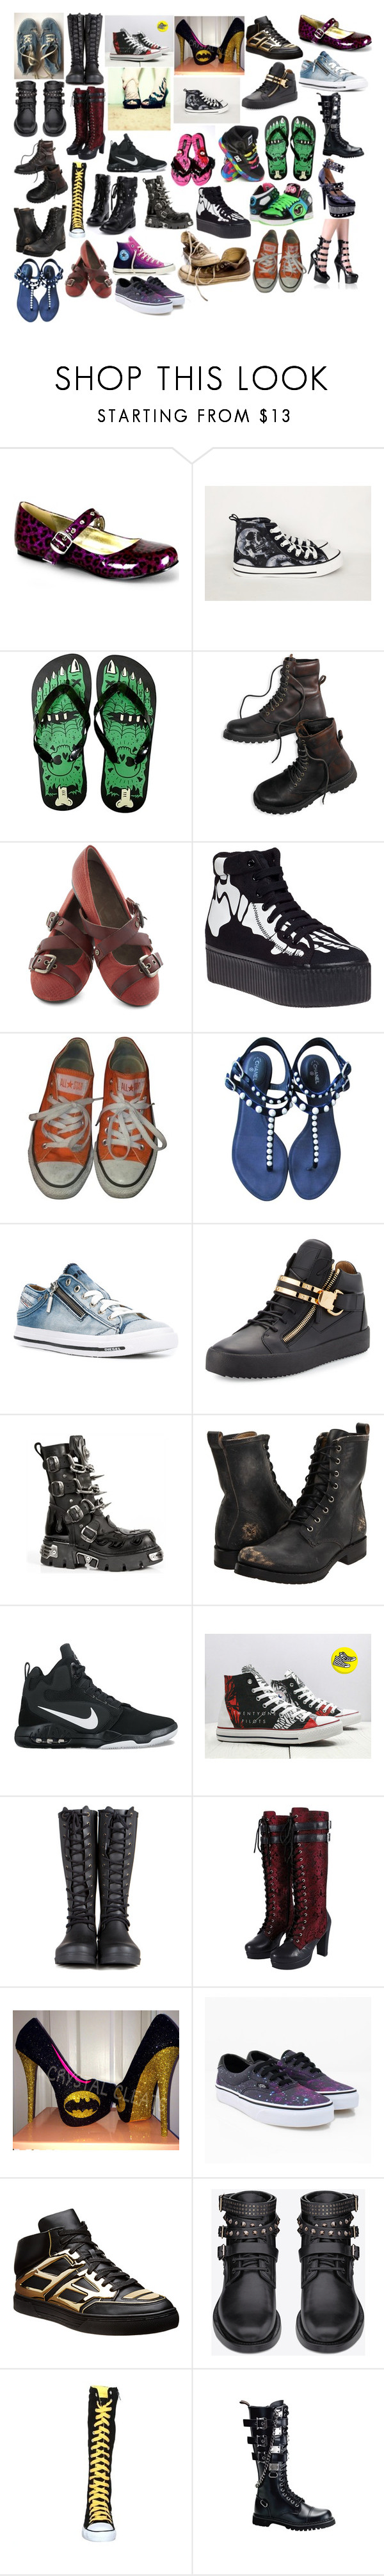 """Girl Shoes 26"" by spellcasters ❤ liked on Polyvore featuring Vans, Converse, Demonia, American Eagle Outfitters, Jeffrey Campbell, Chanel, Diesel, Giuseppe Zanotti, Reactor and Frye"